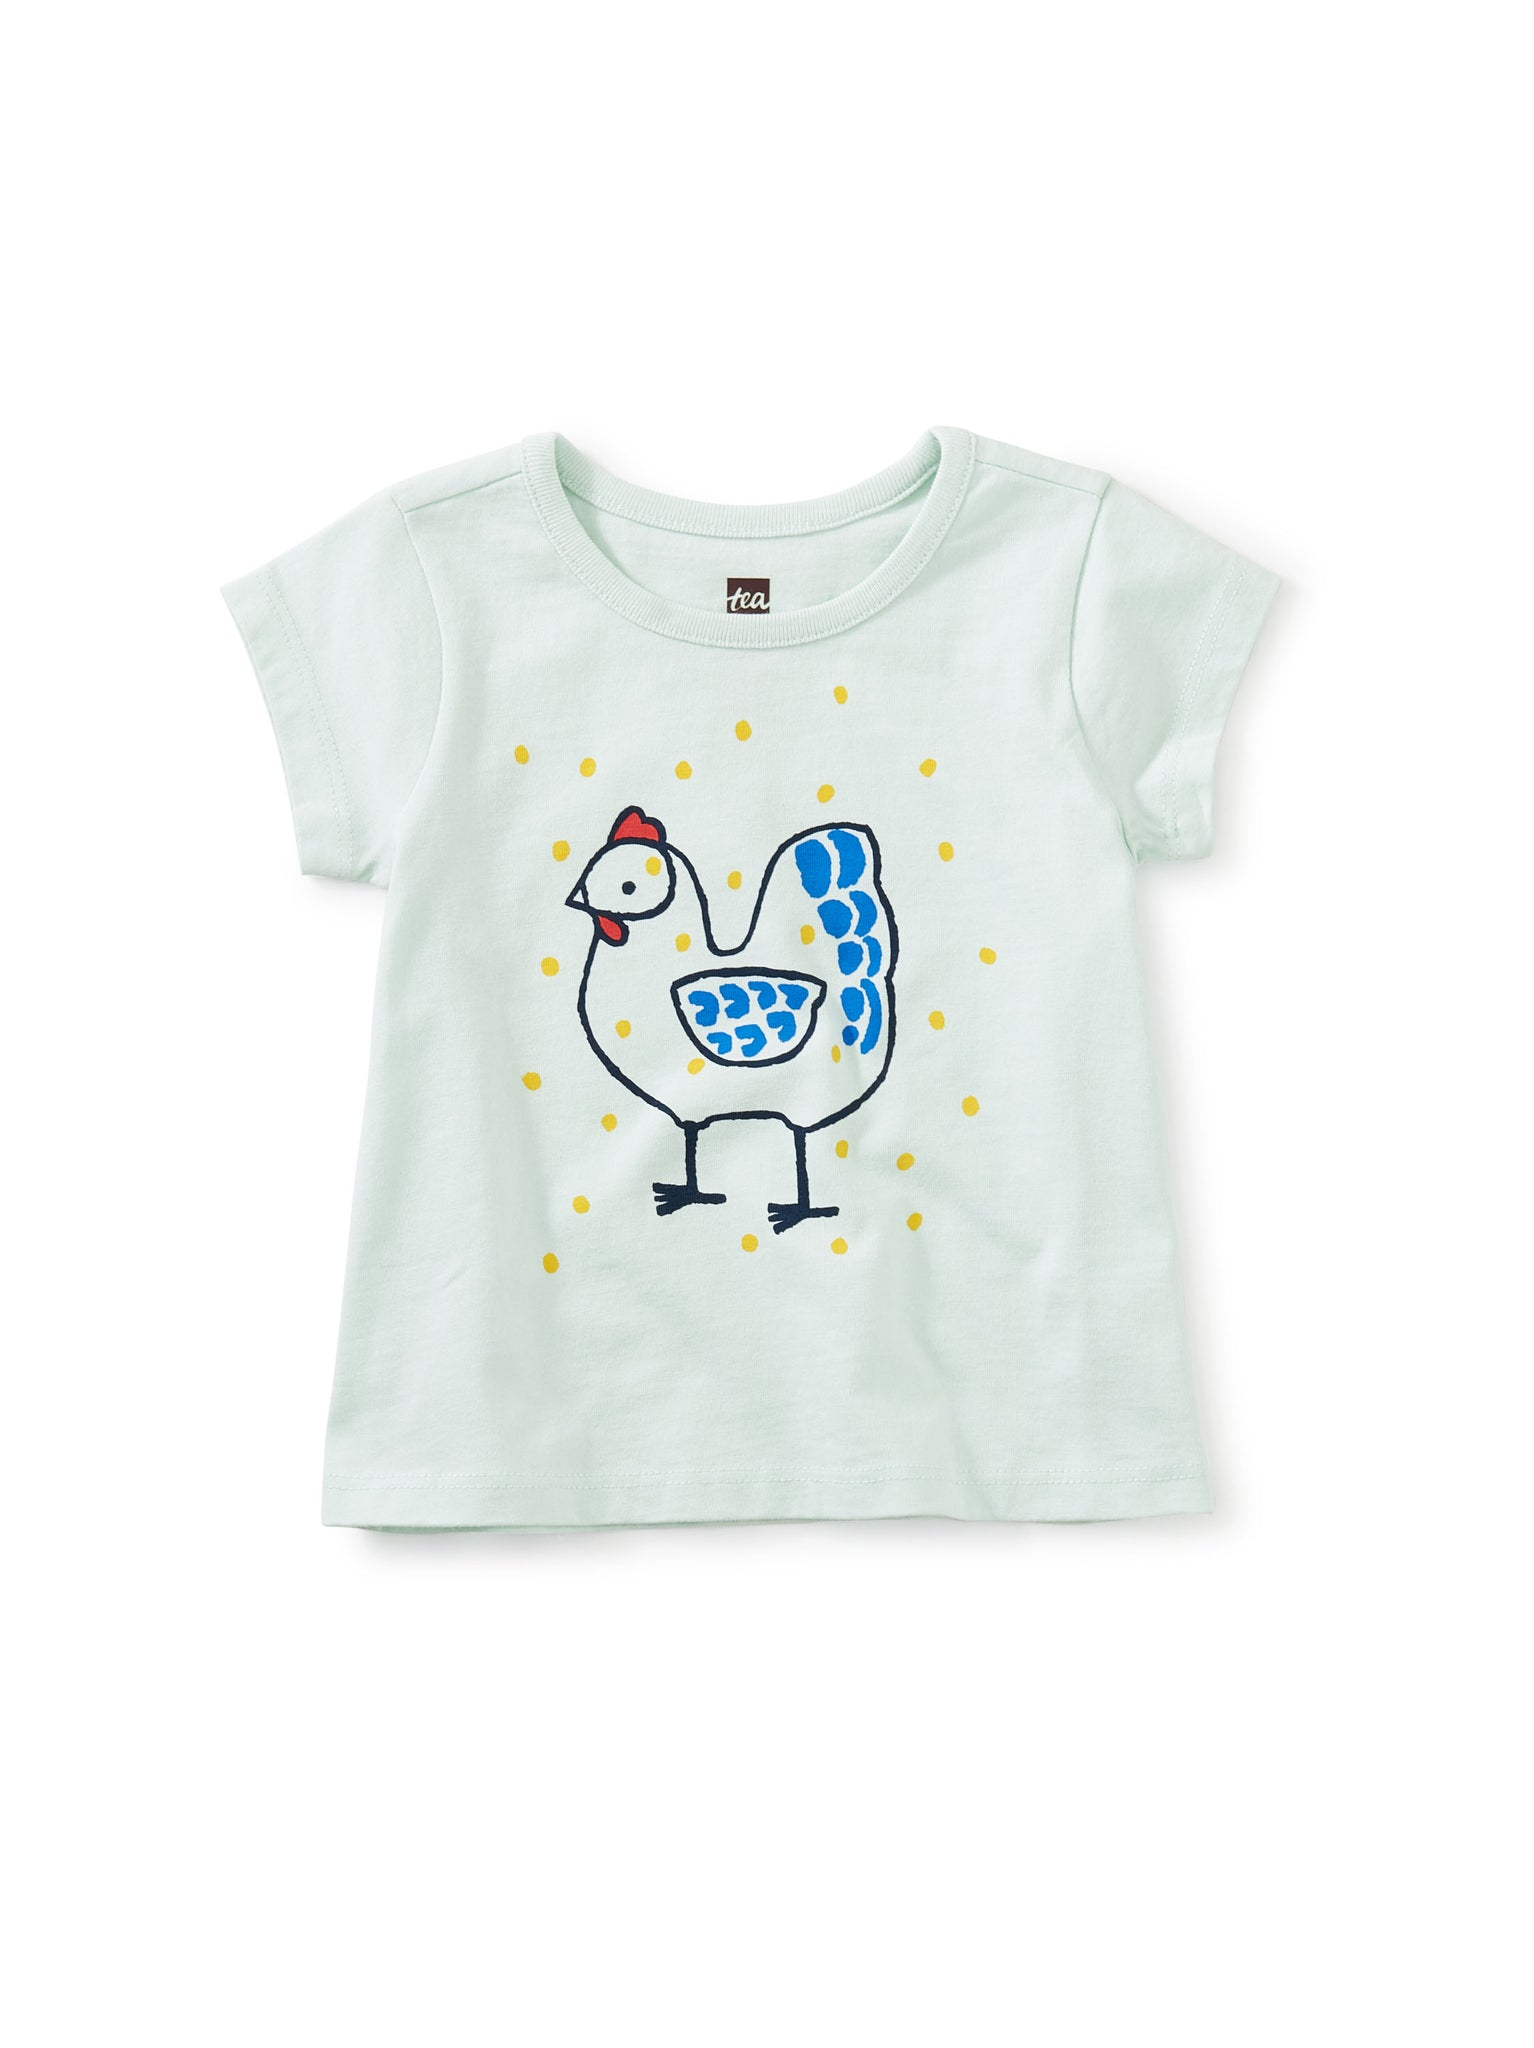 Chicken Little Graphic Tee - Garden Party